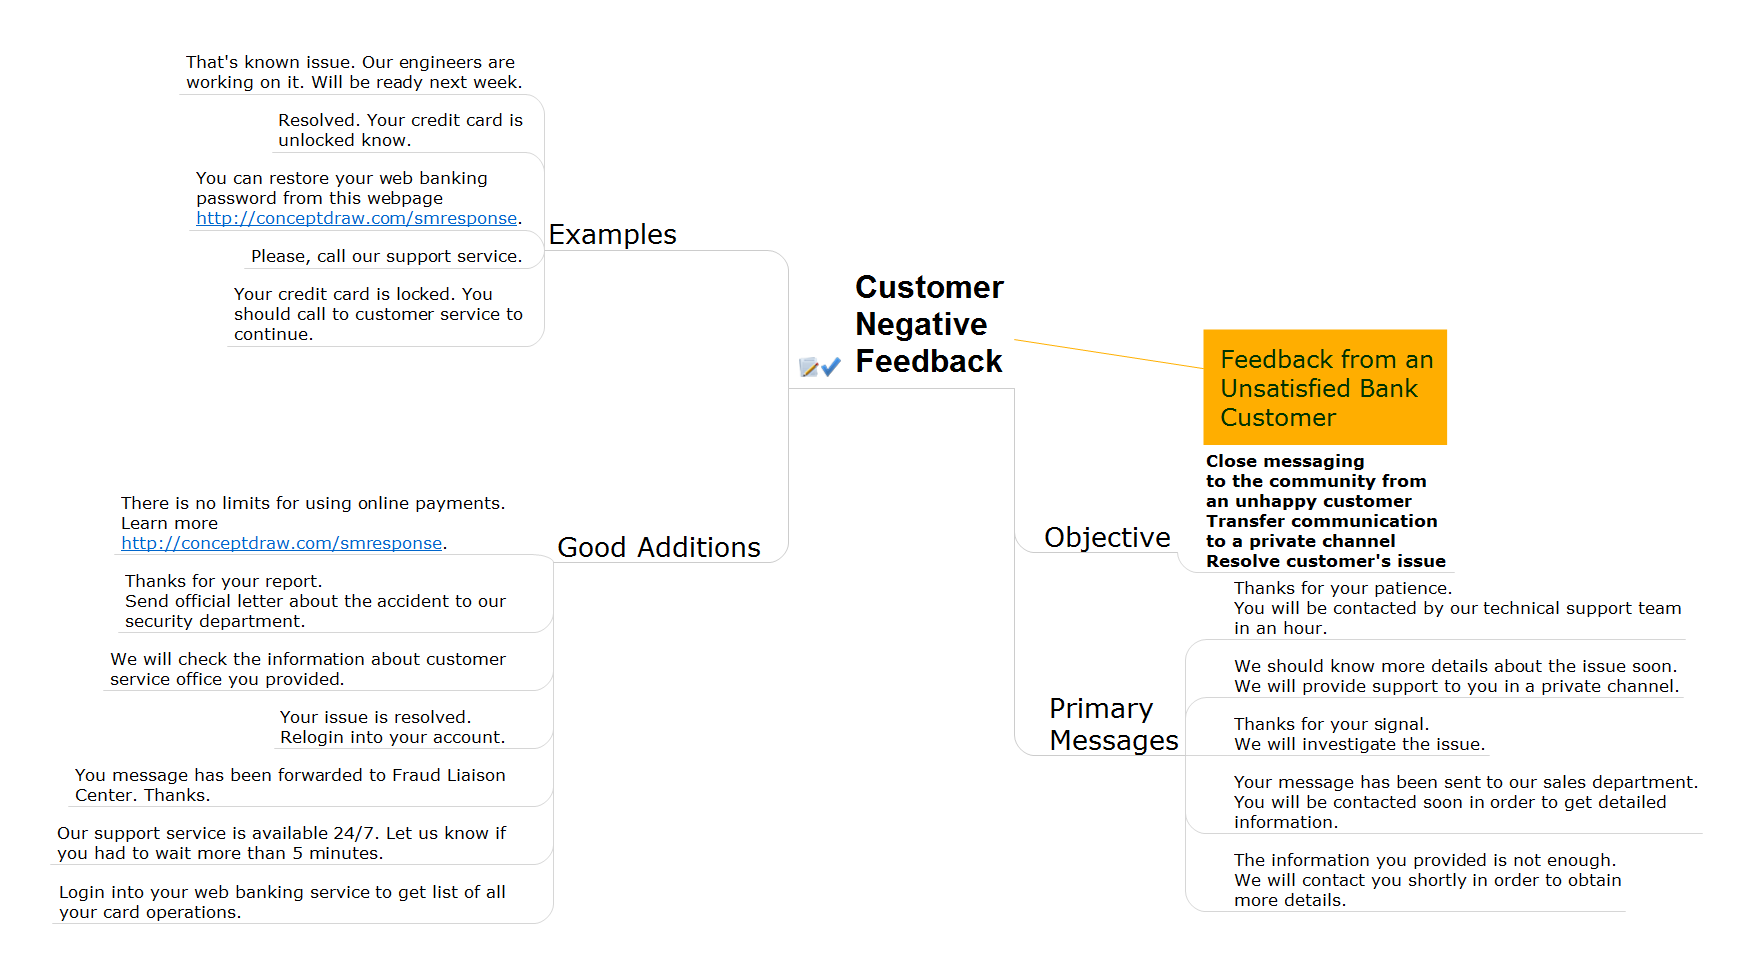 Action mind map - Bank customer notifications